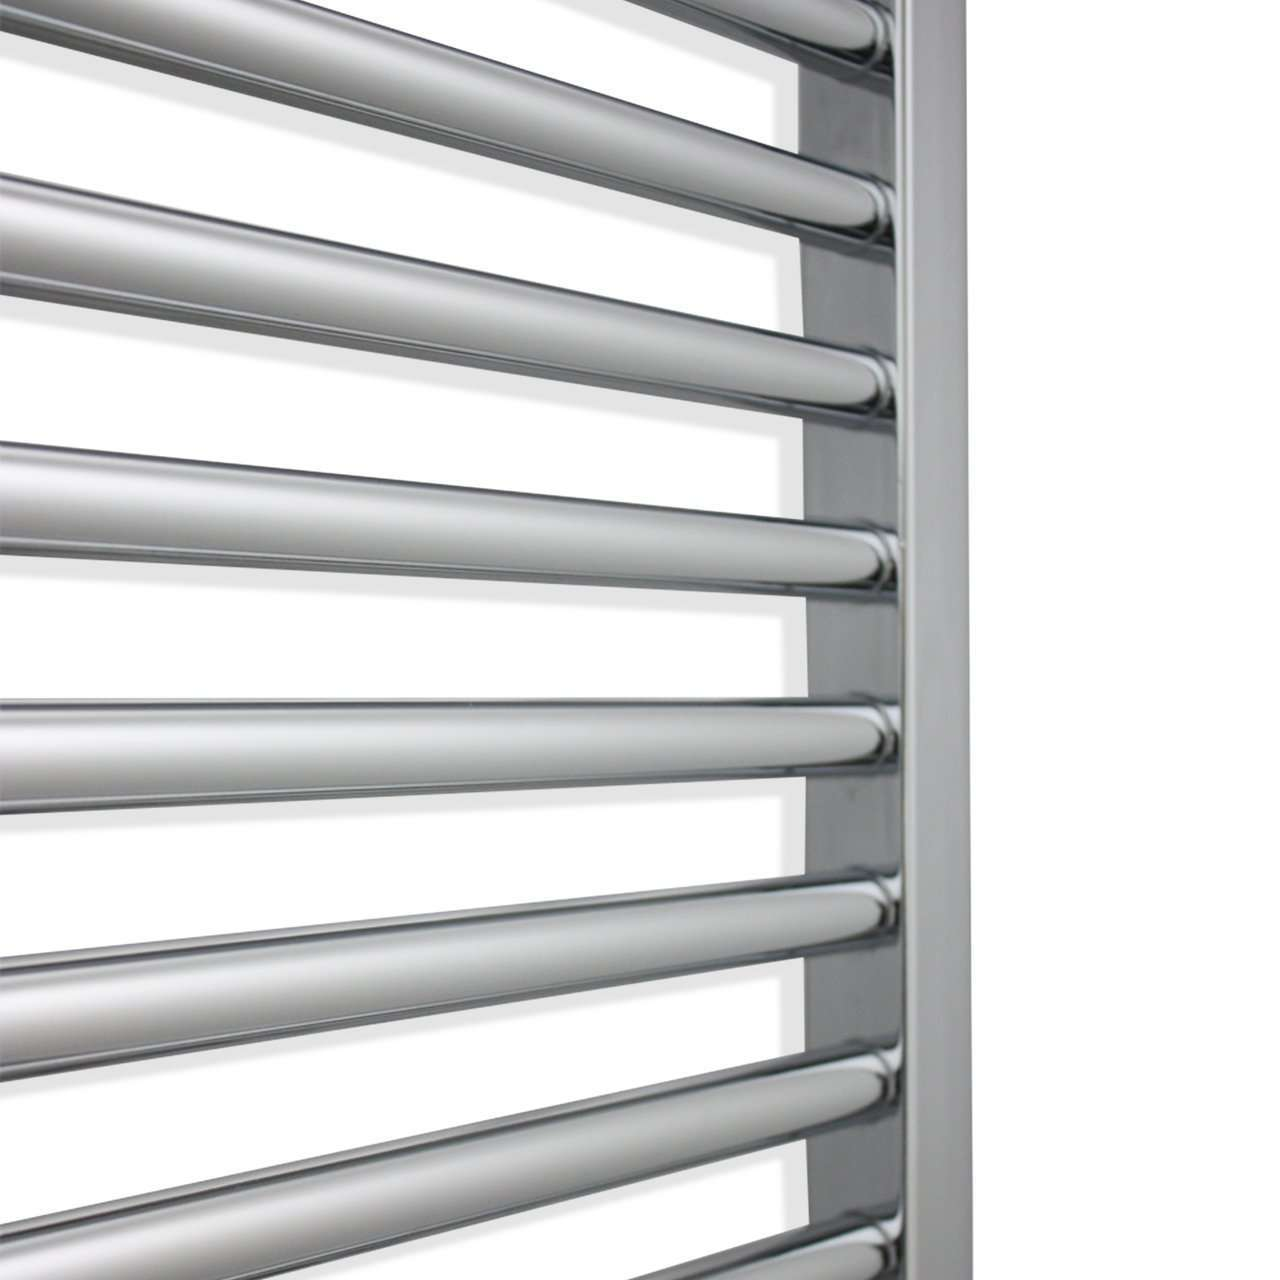 600mm Wide 1800mm High Straight Chrome Heated Towel Rail Radiator HTR